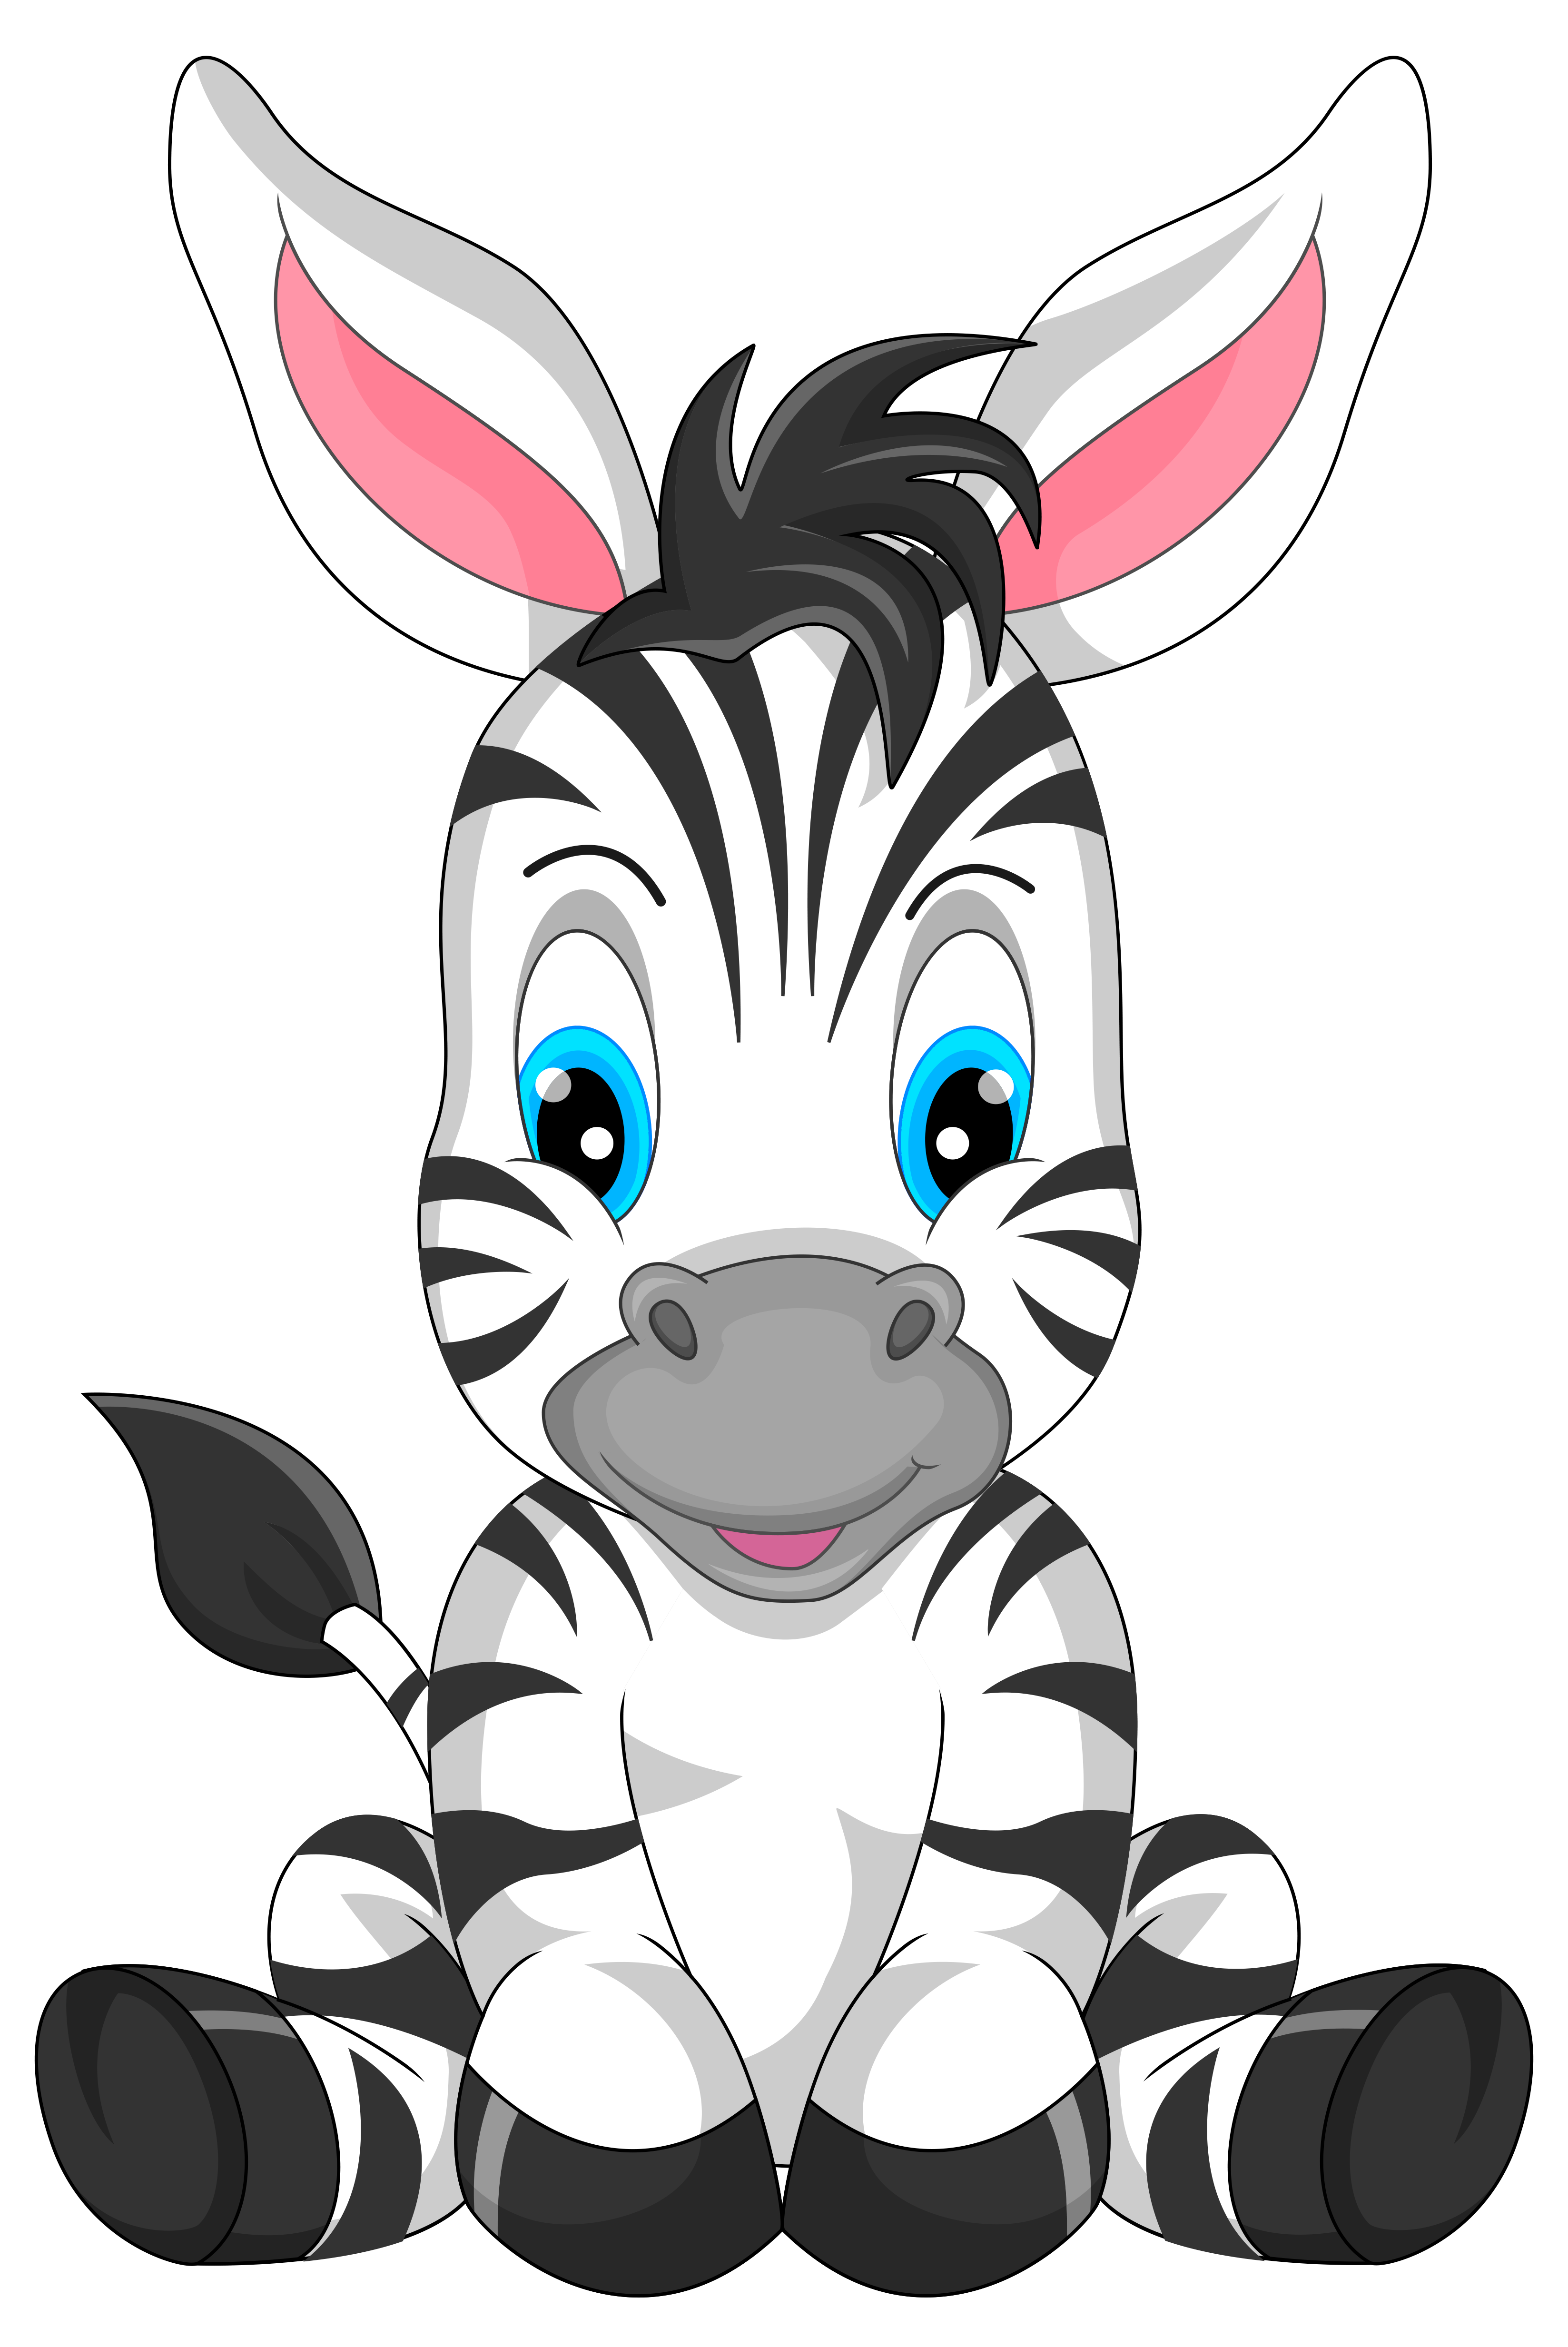 3295x4932 Cute Zebra Cartoon Png Clipart Imageu200b Gallery Yopriceville